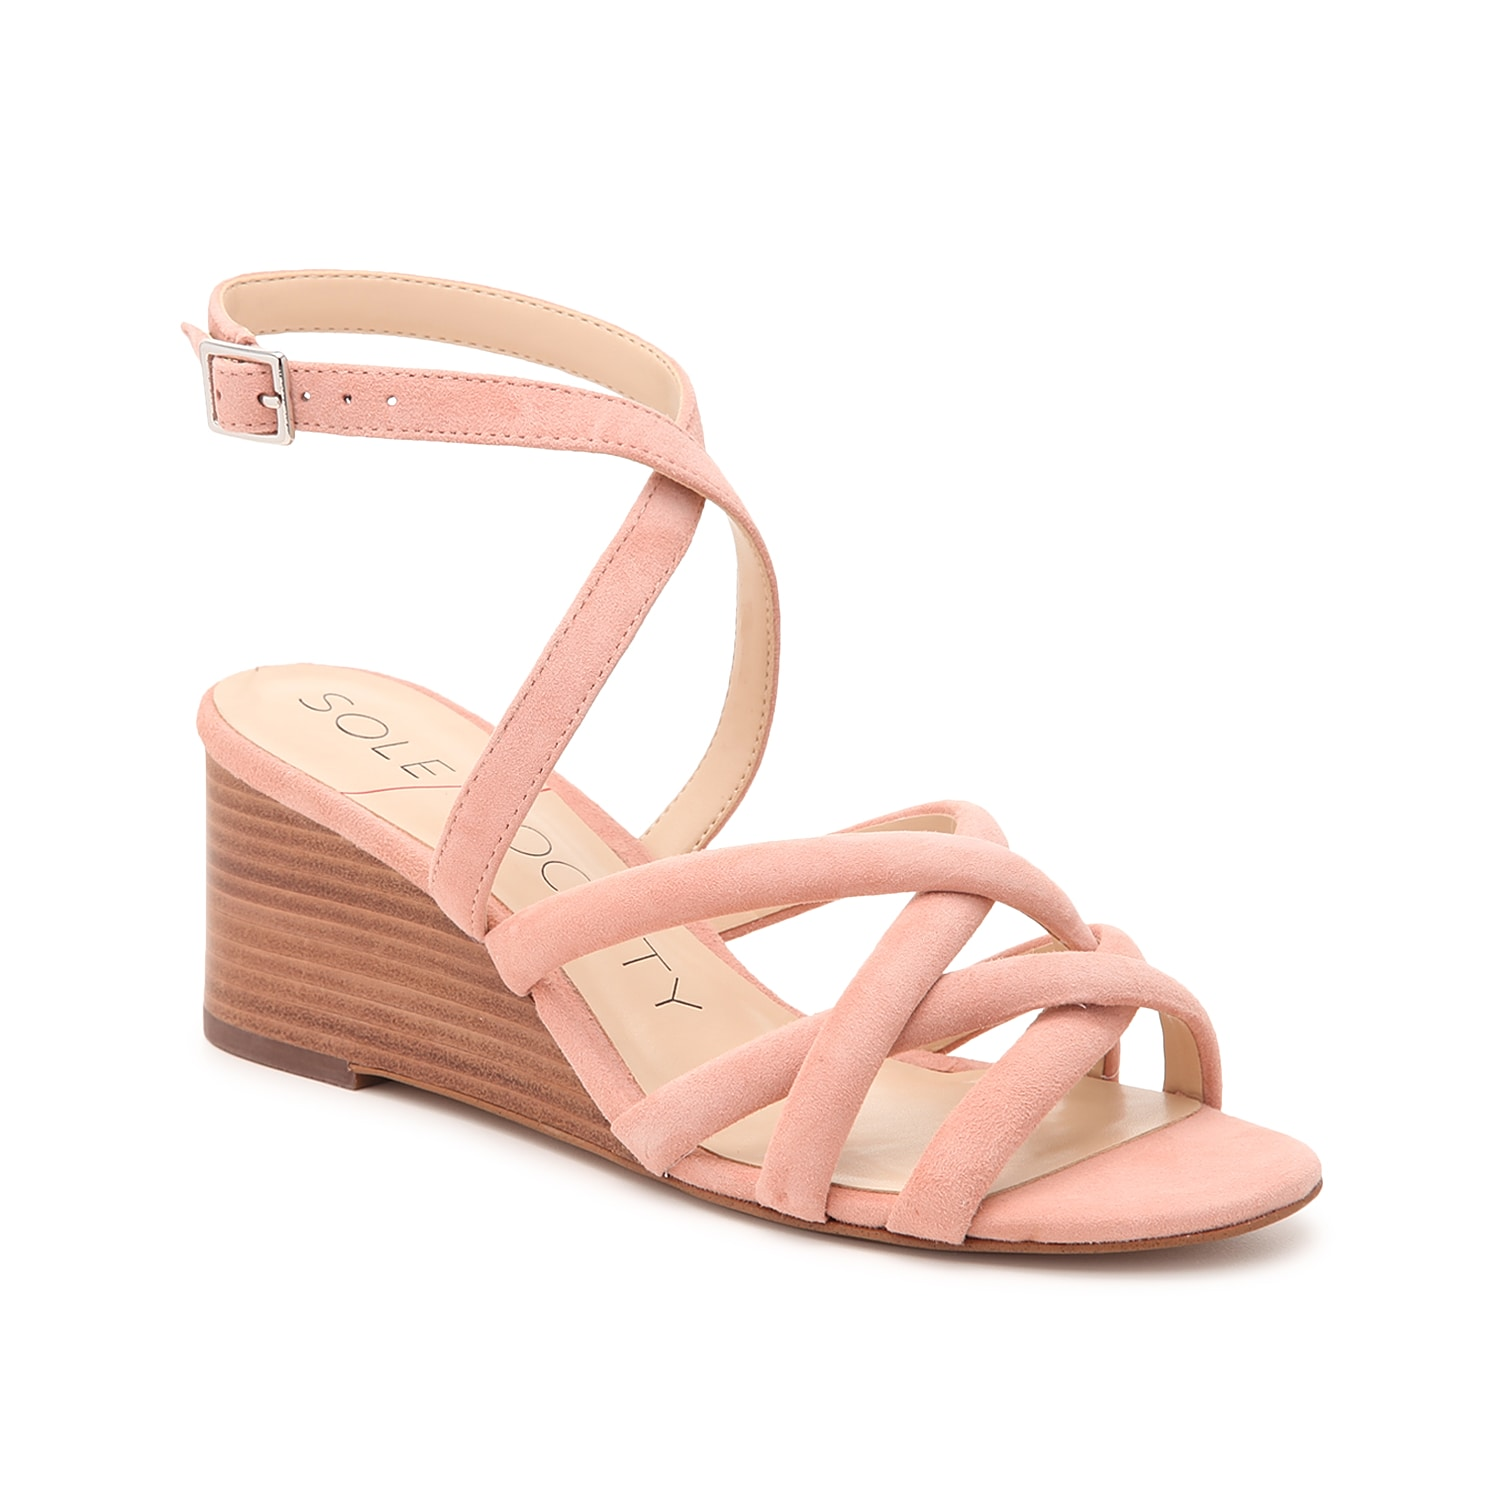 Crisscross and wrapped straps lend casual charm to the Khalessia sandals from Sole Society. These suede stunners are propped up by a mid-rise wedge that boosts your height without going too high!